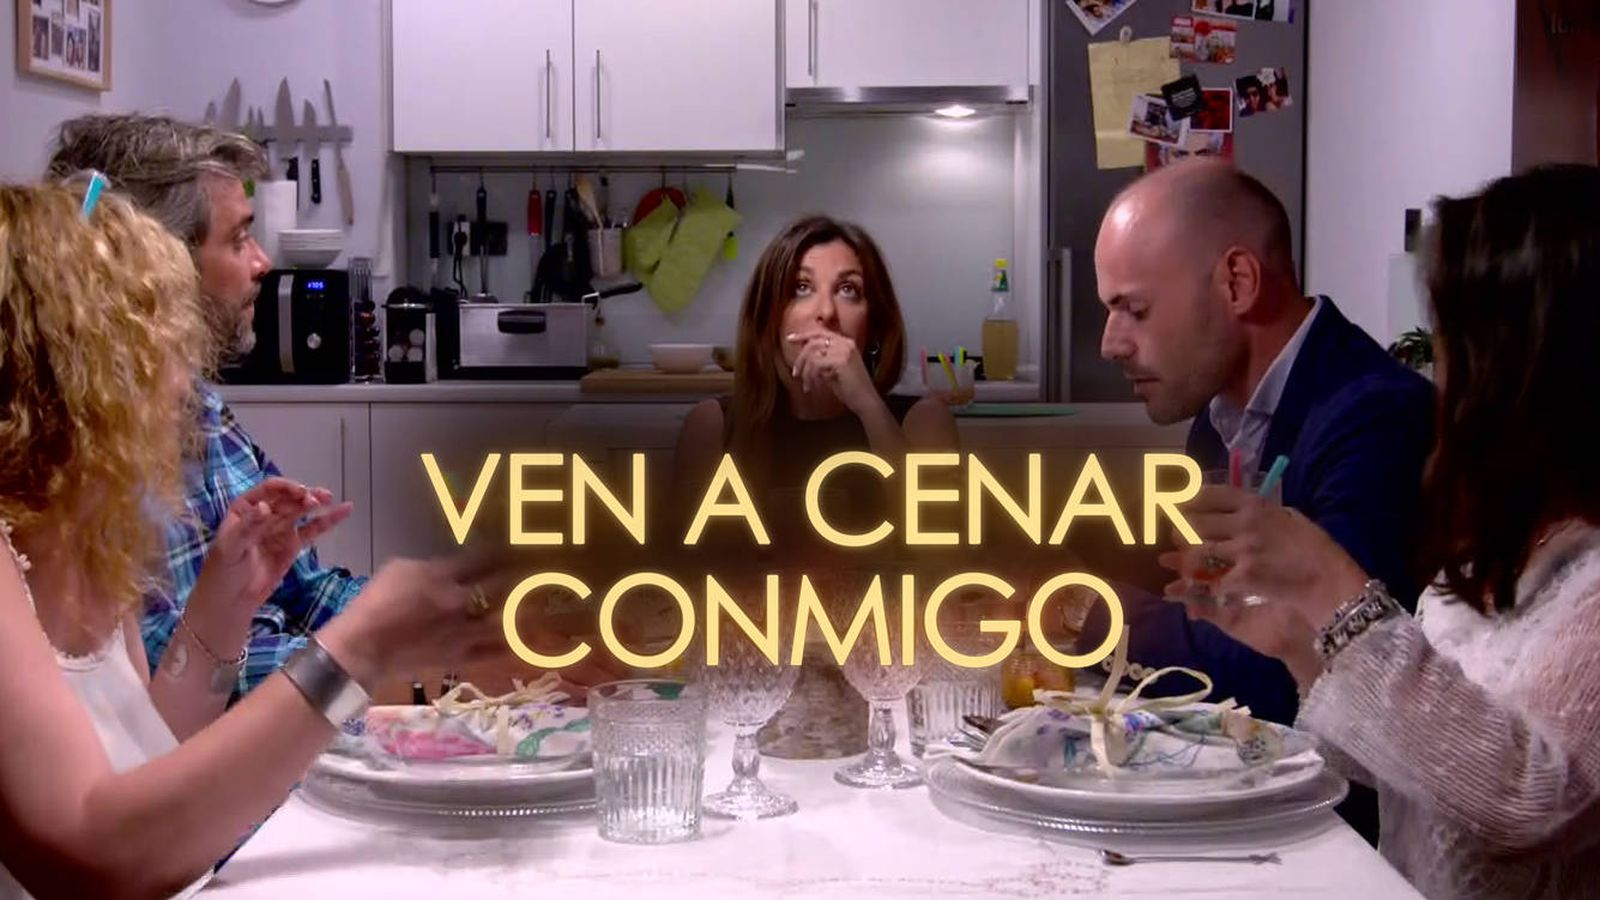 Ven a cenar conmigo 1x274 Espa&ntildeol Disponible